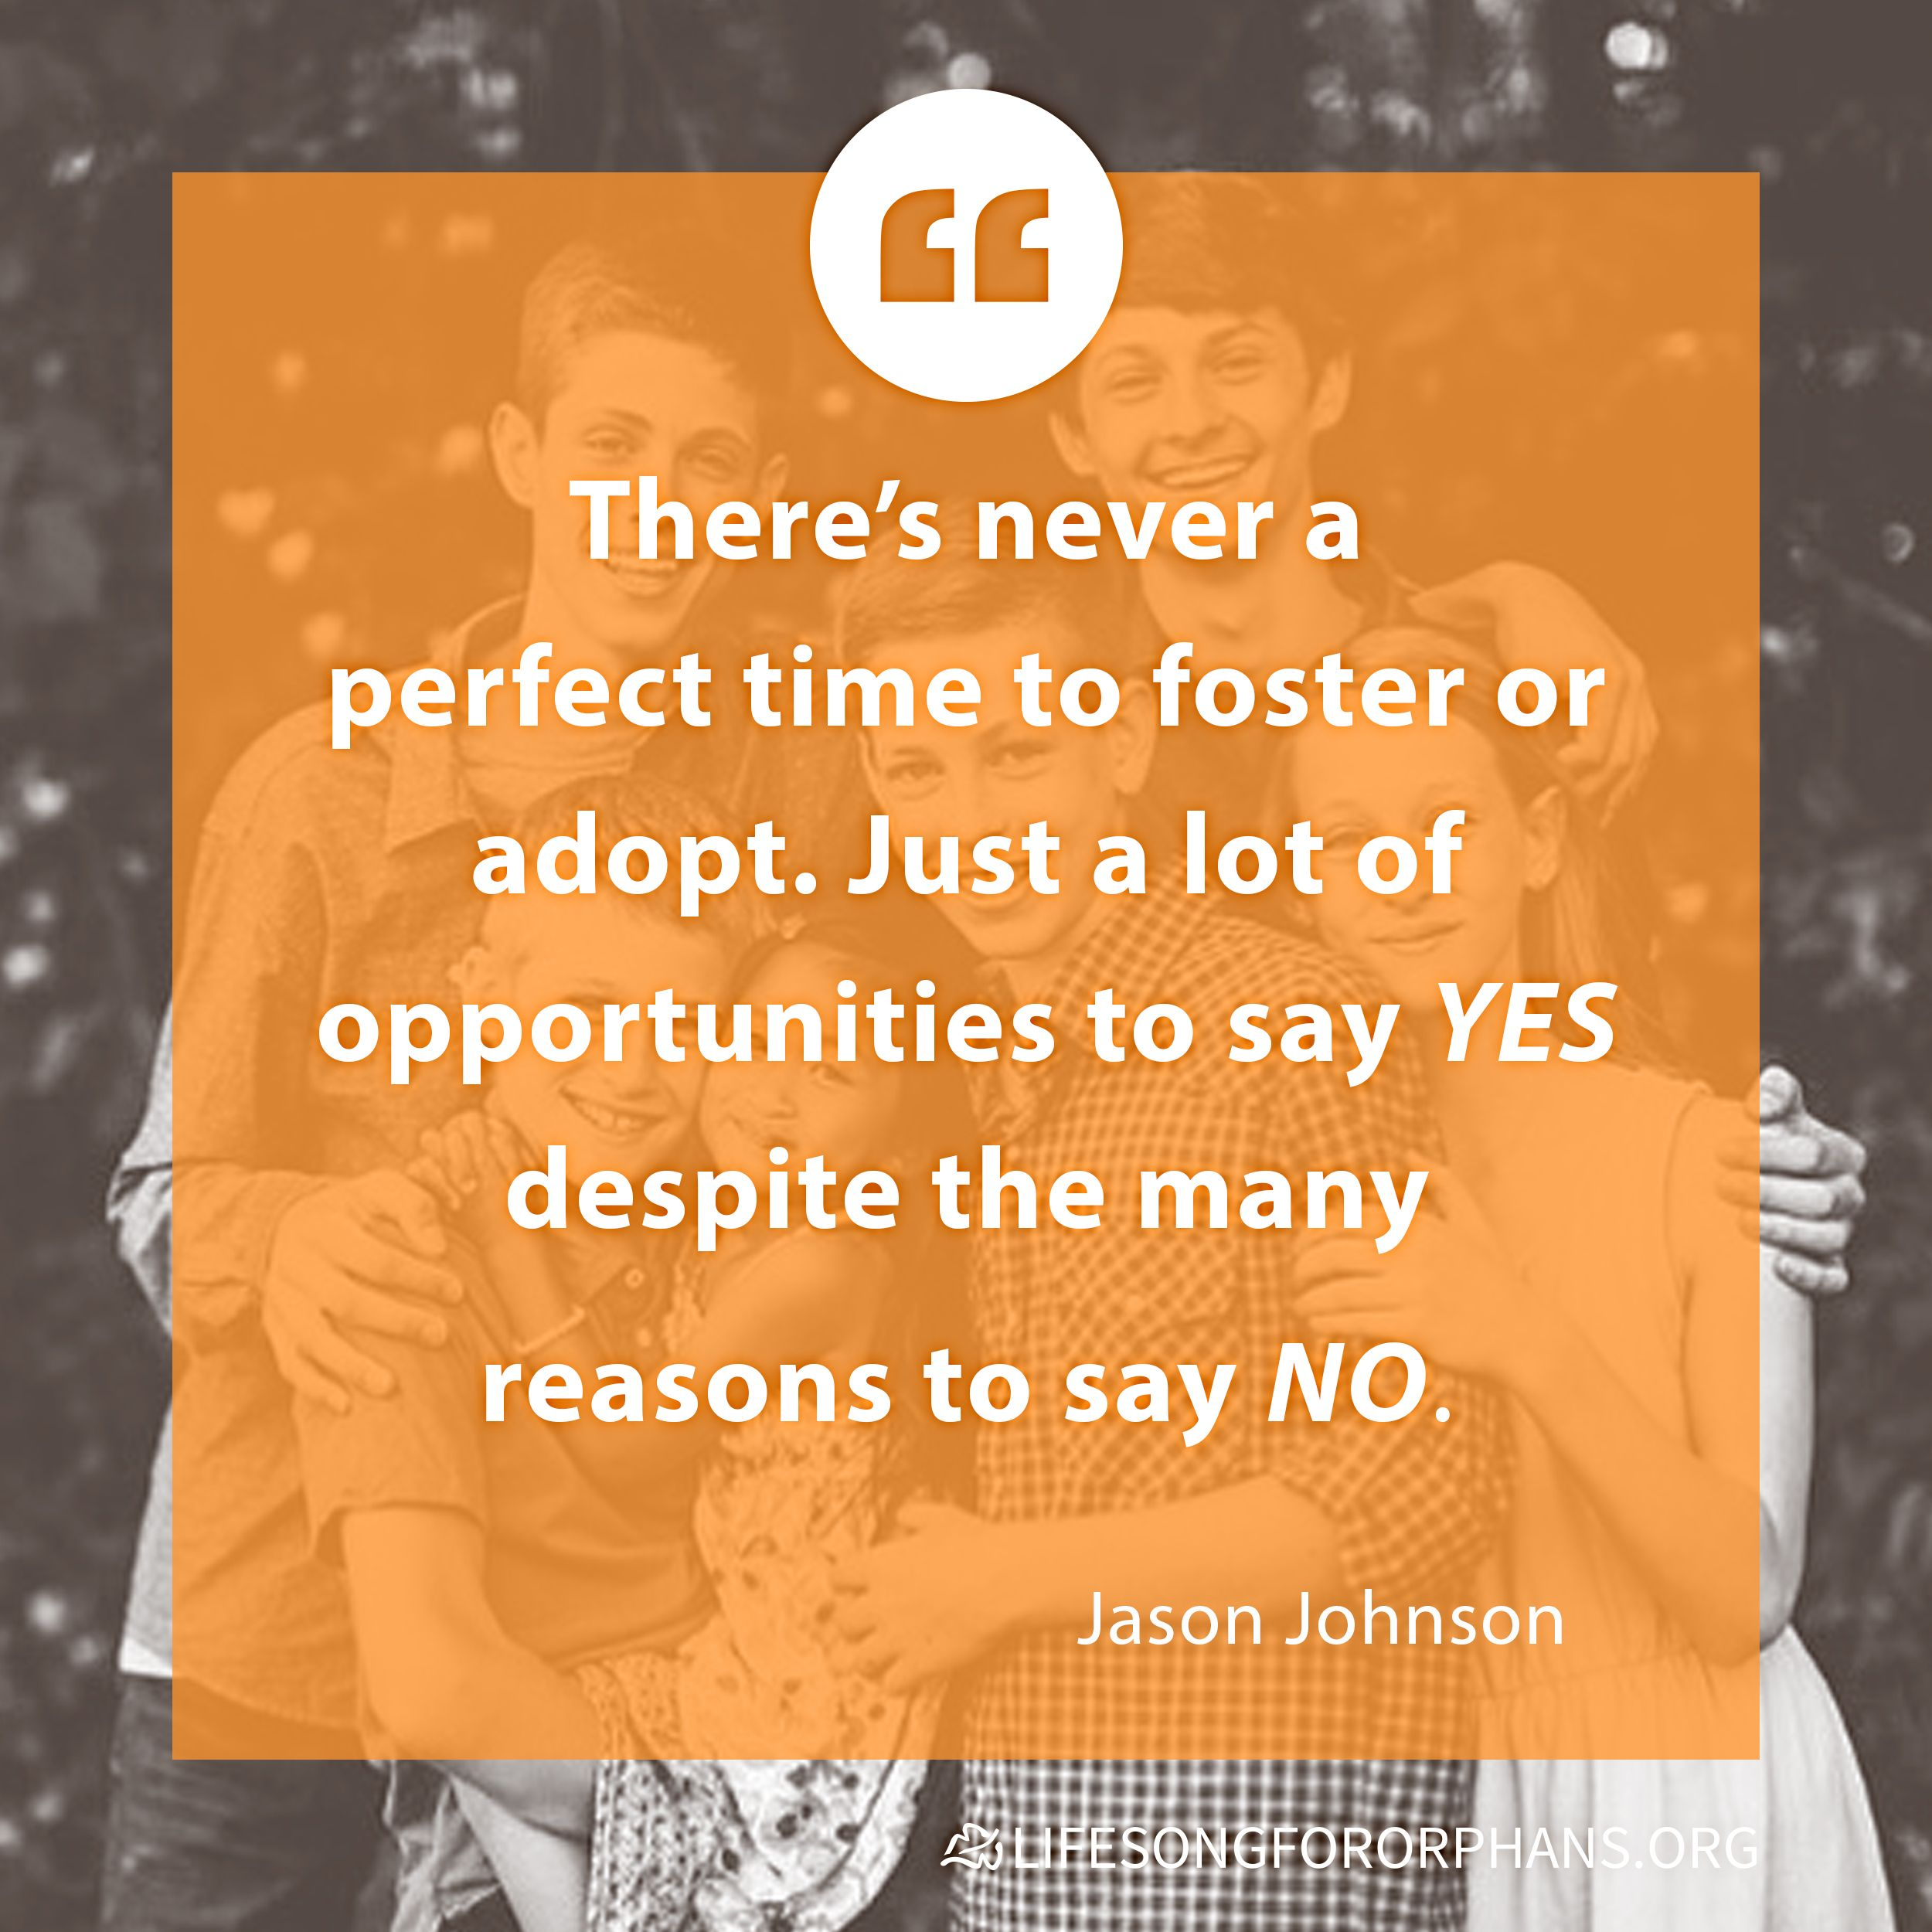 There's never a perfect time to foster or adopt. Just a lot of opportunities to say YES despite the many reasons to say NO. --Jason Johnson